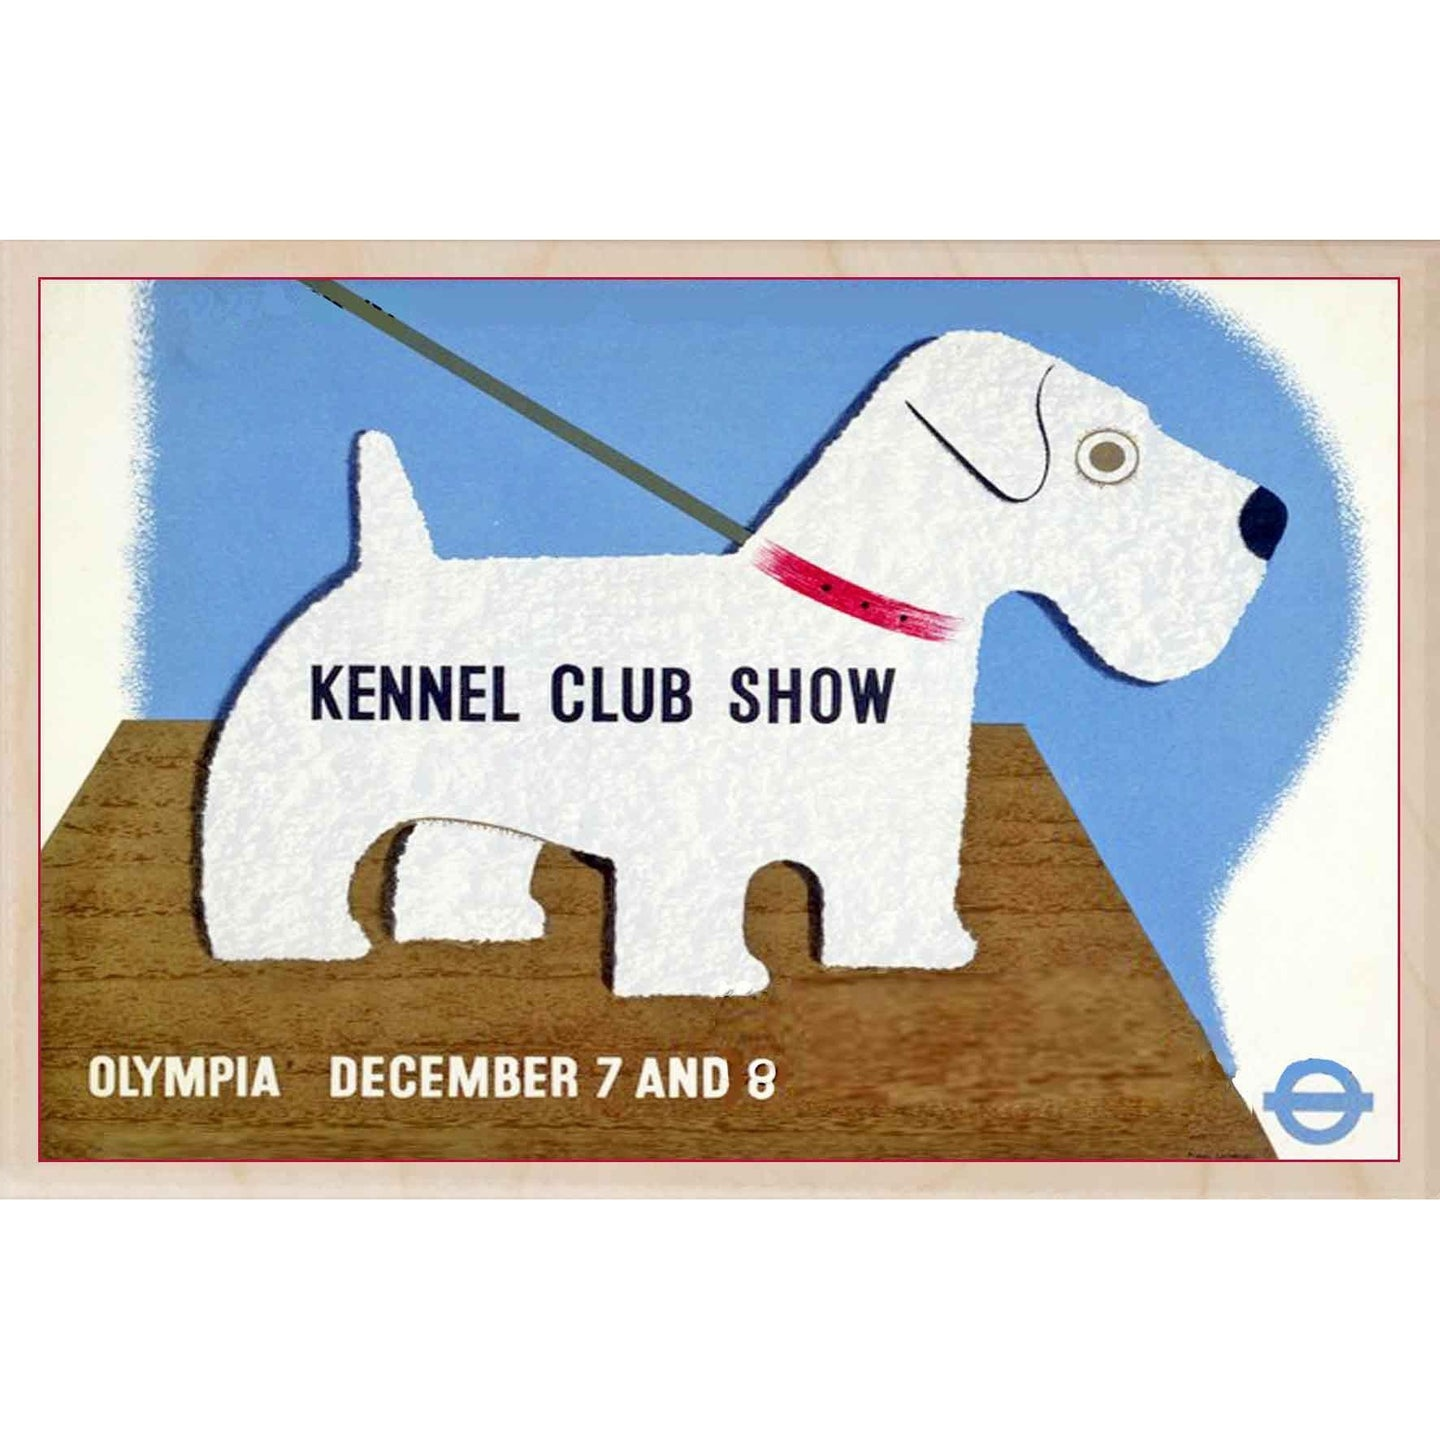 KENNEL CLUB SHOW-[wooden_postcard]-[london_transport_museum]-[original_illustration]THE WOODEN POSTCARD COMPANY